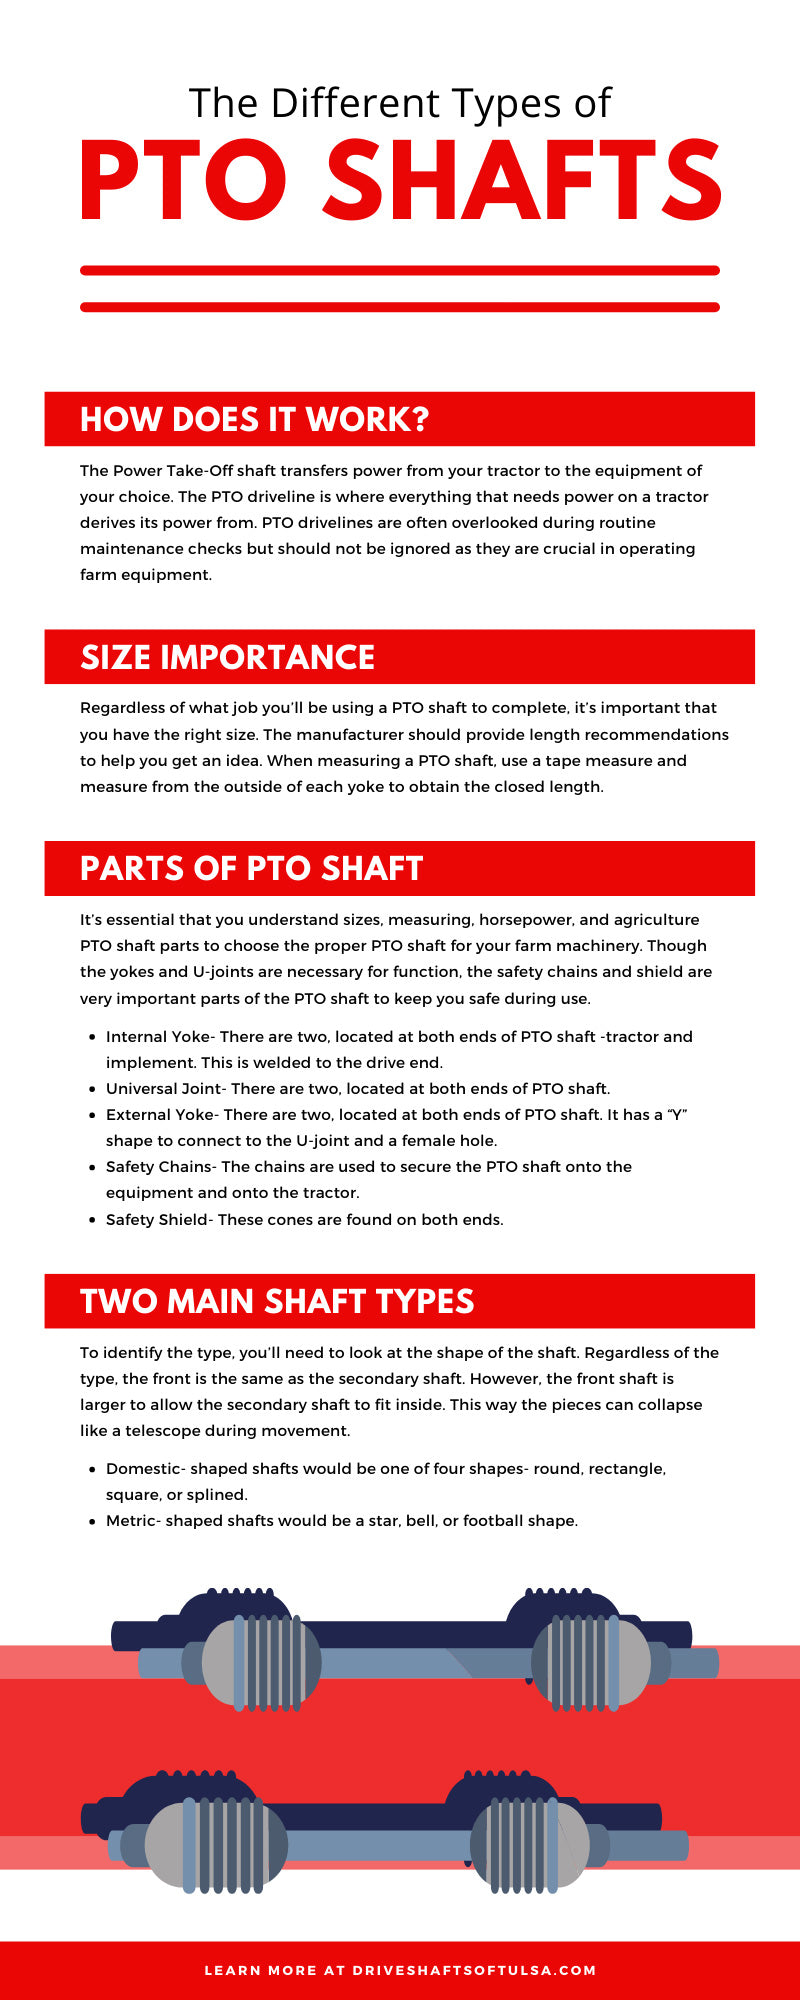 The Different Types of PTO Shafts